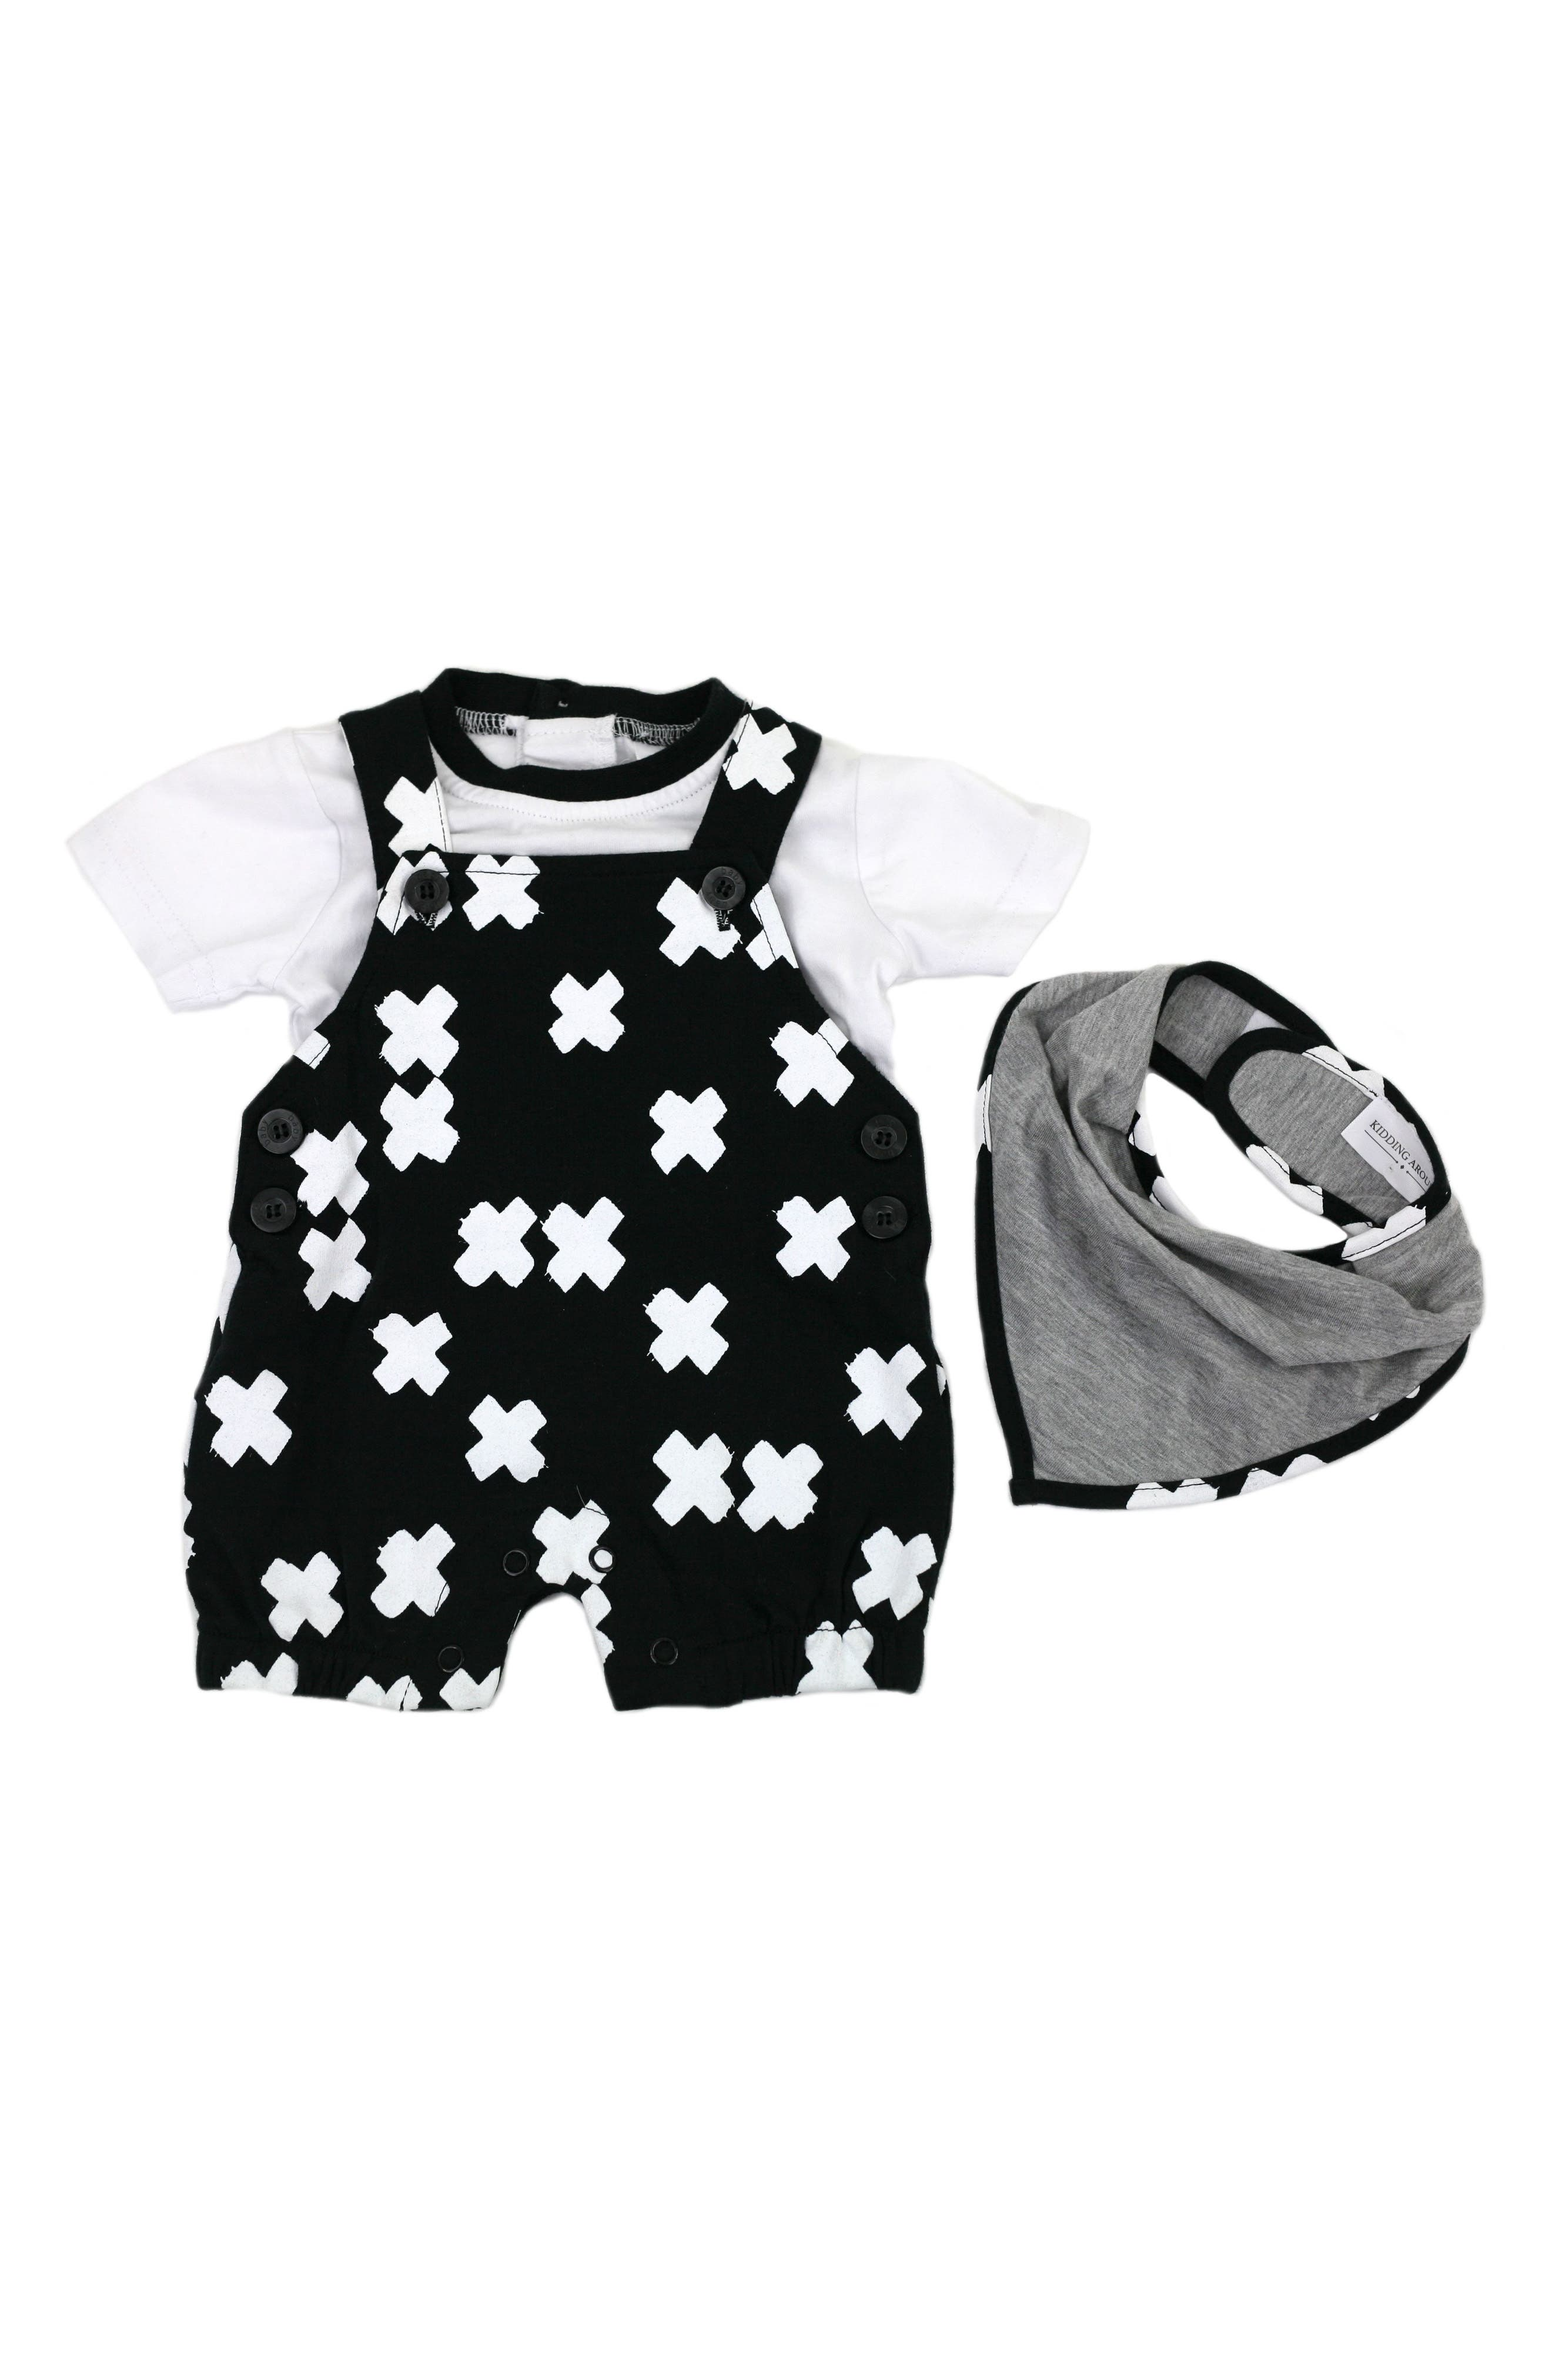 Tee & Short Overalls Set,                             Main thumbnail 1, color,                             001